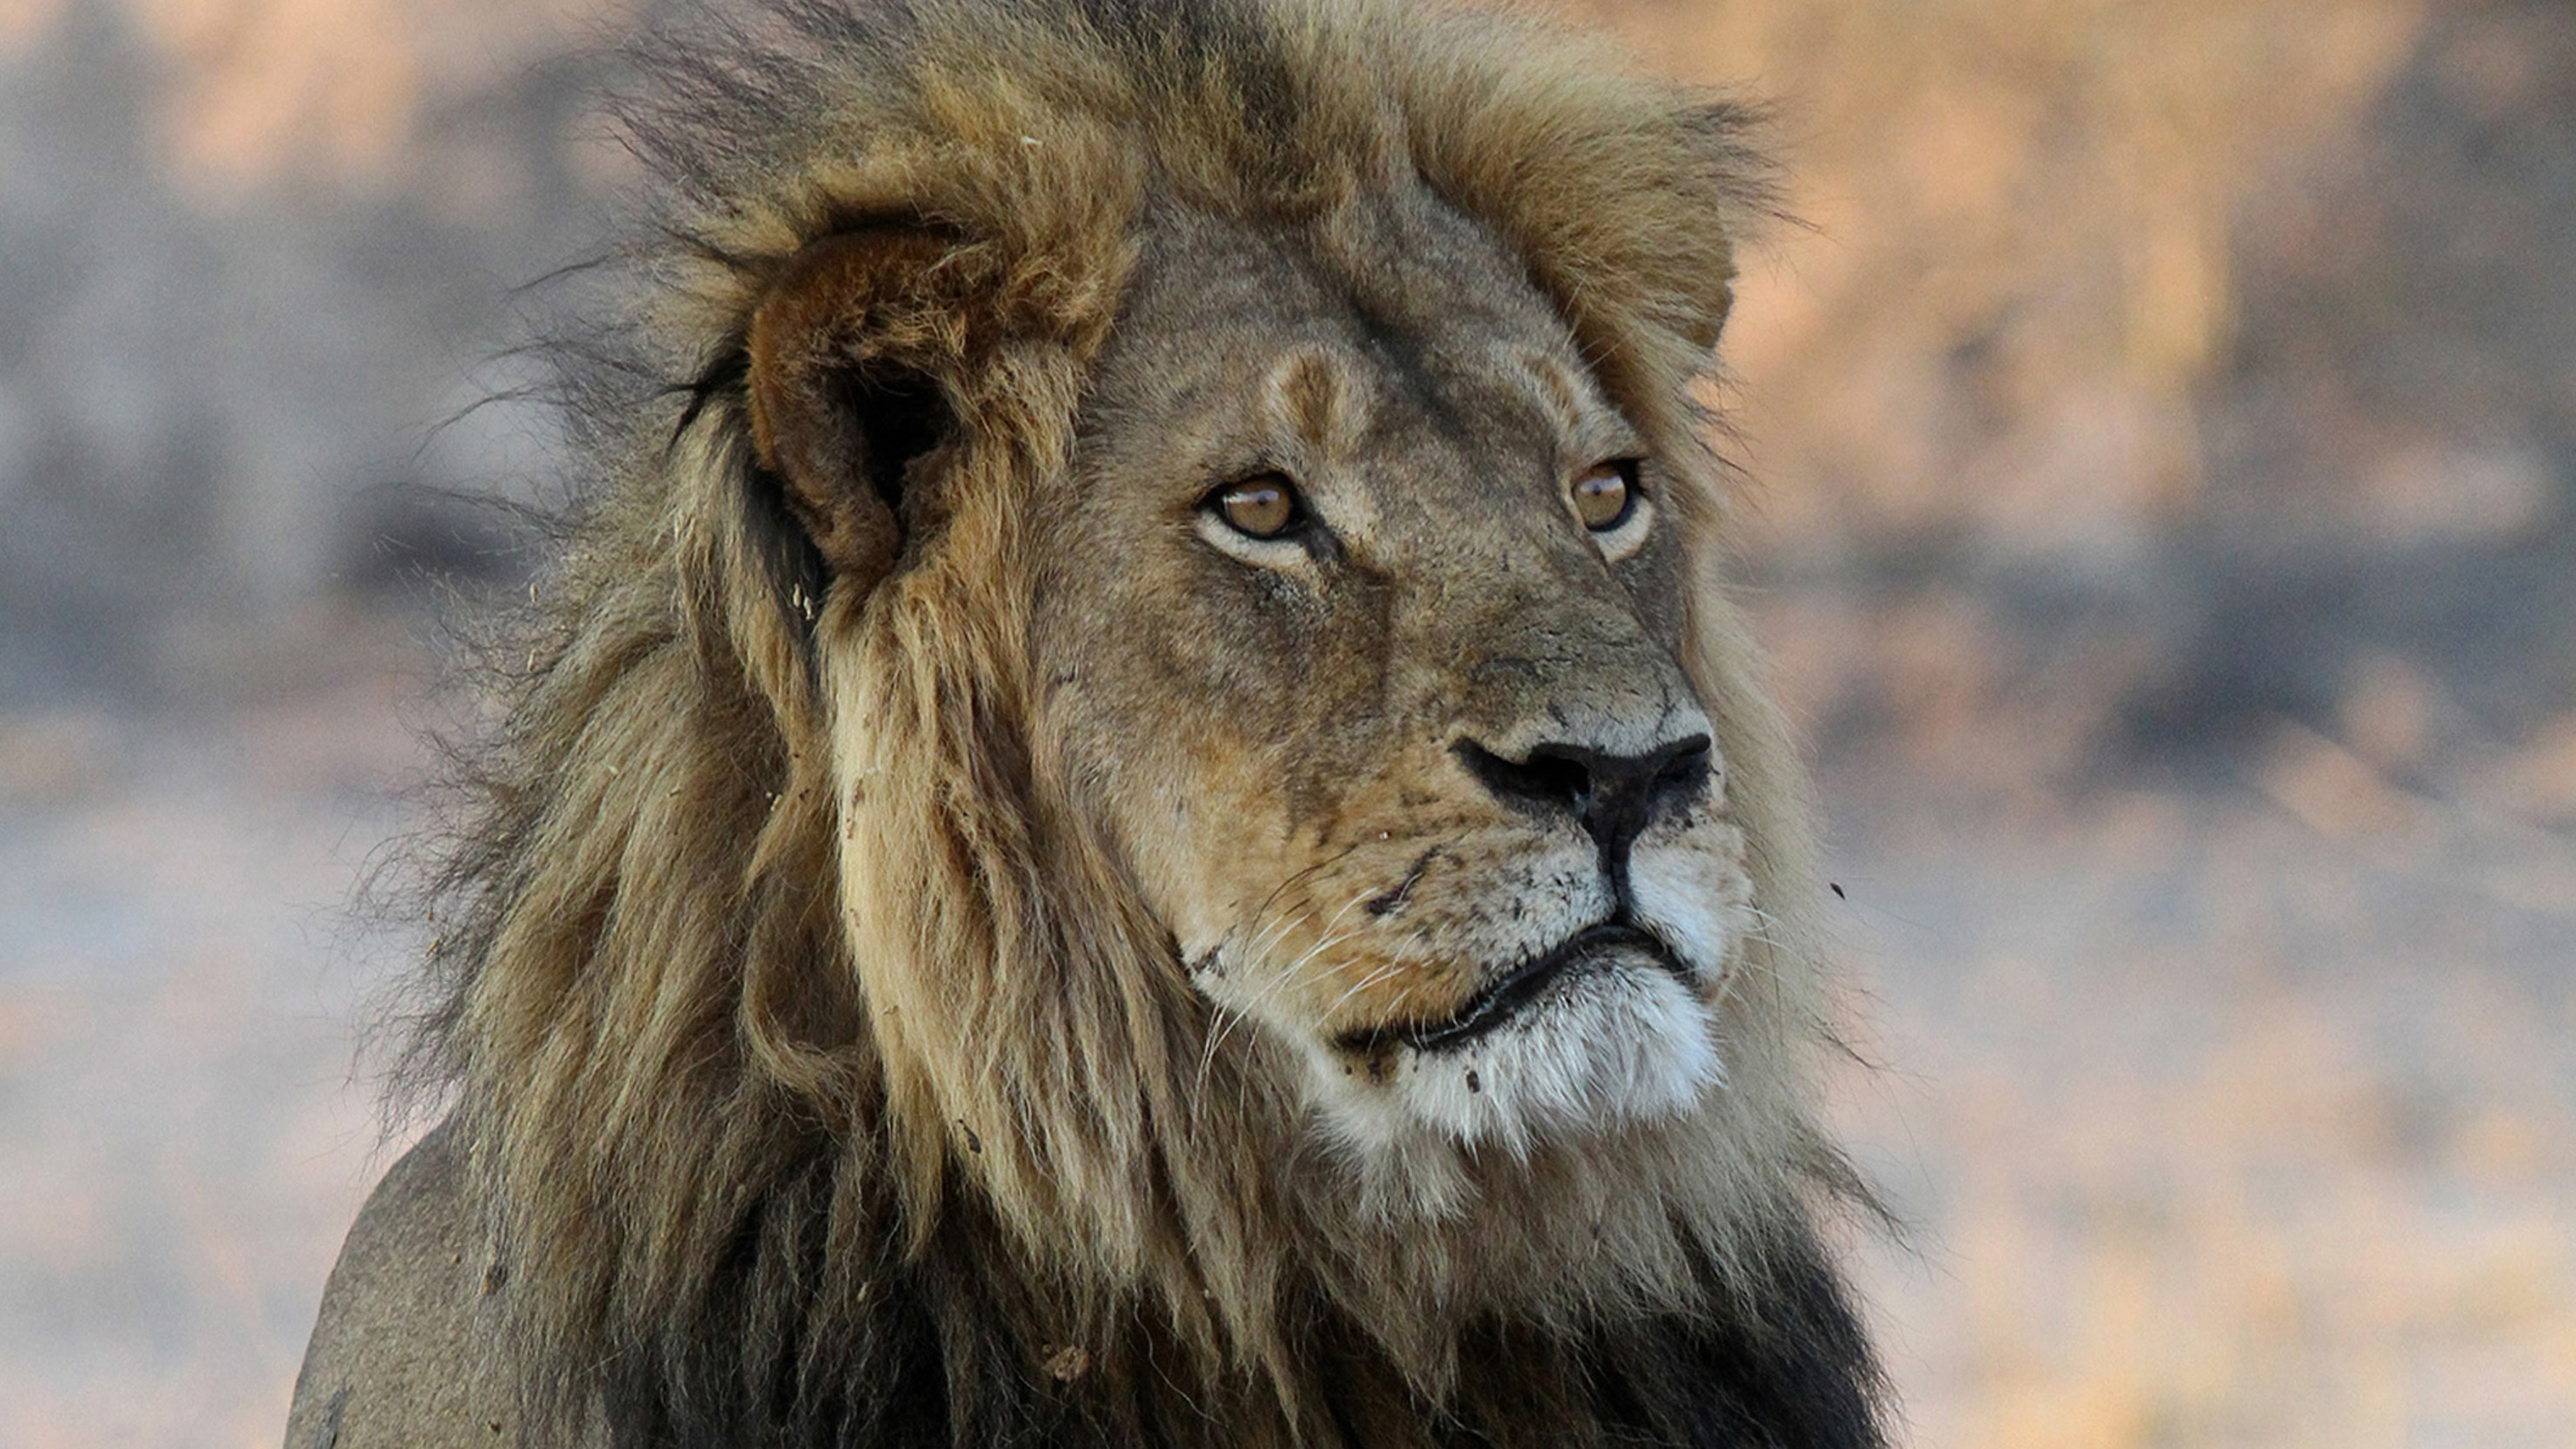 Son of Cecil the Lion, Xanda, killed in trophy hunt